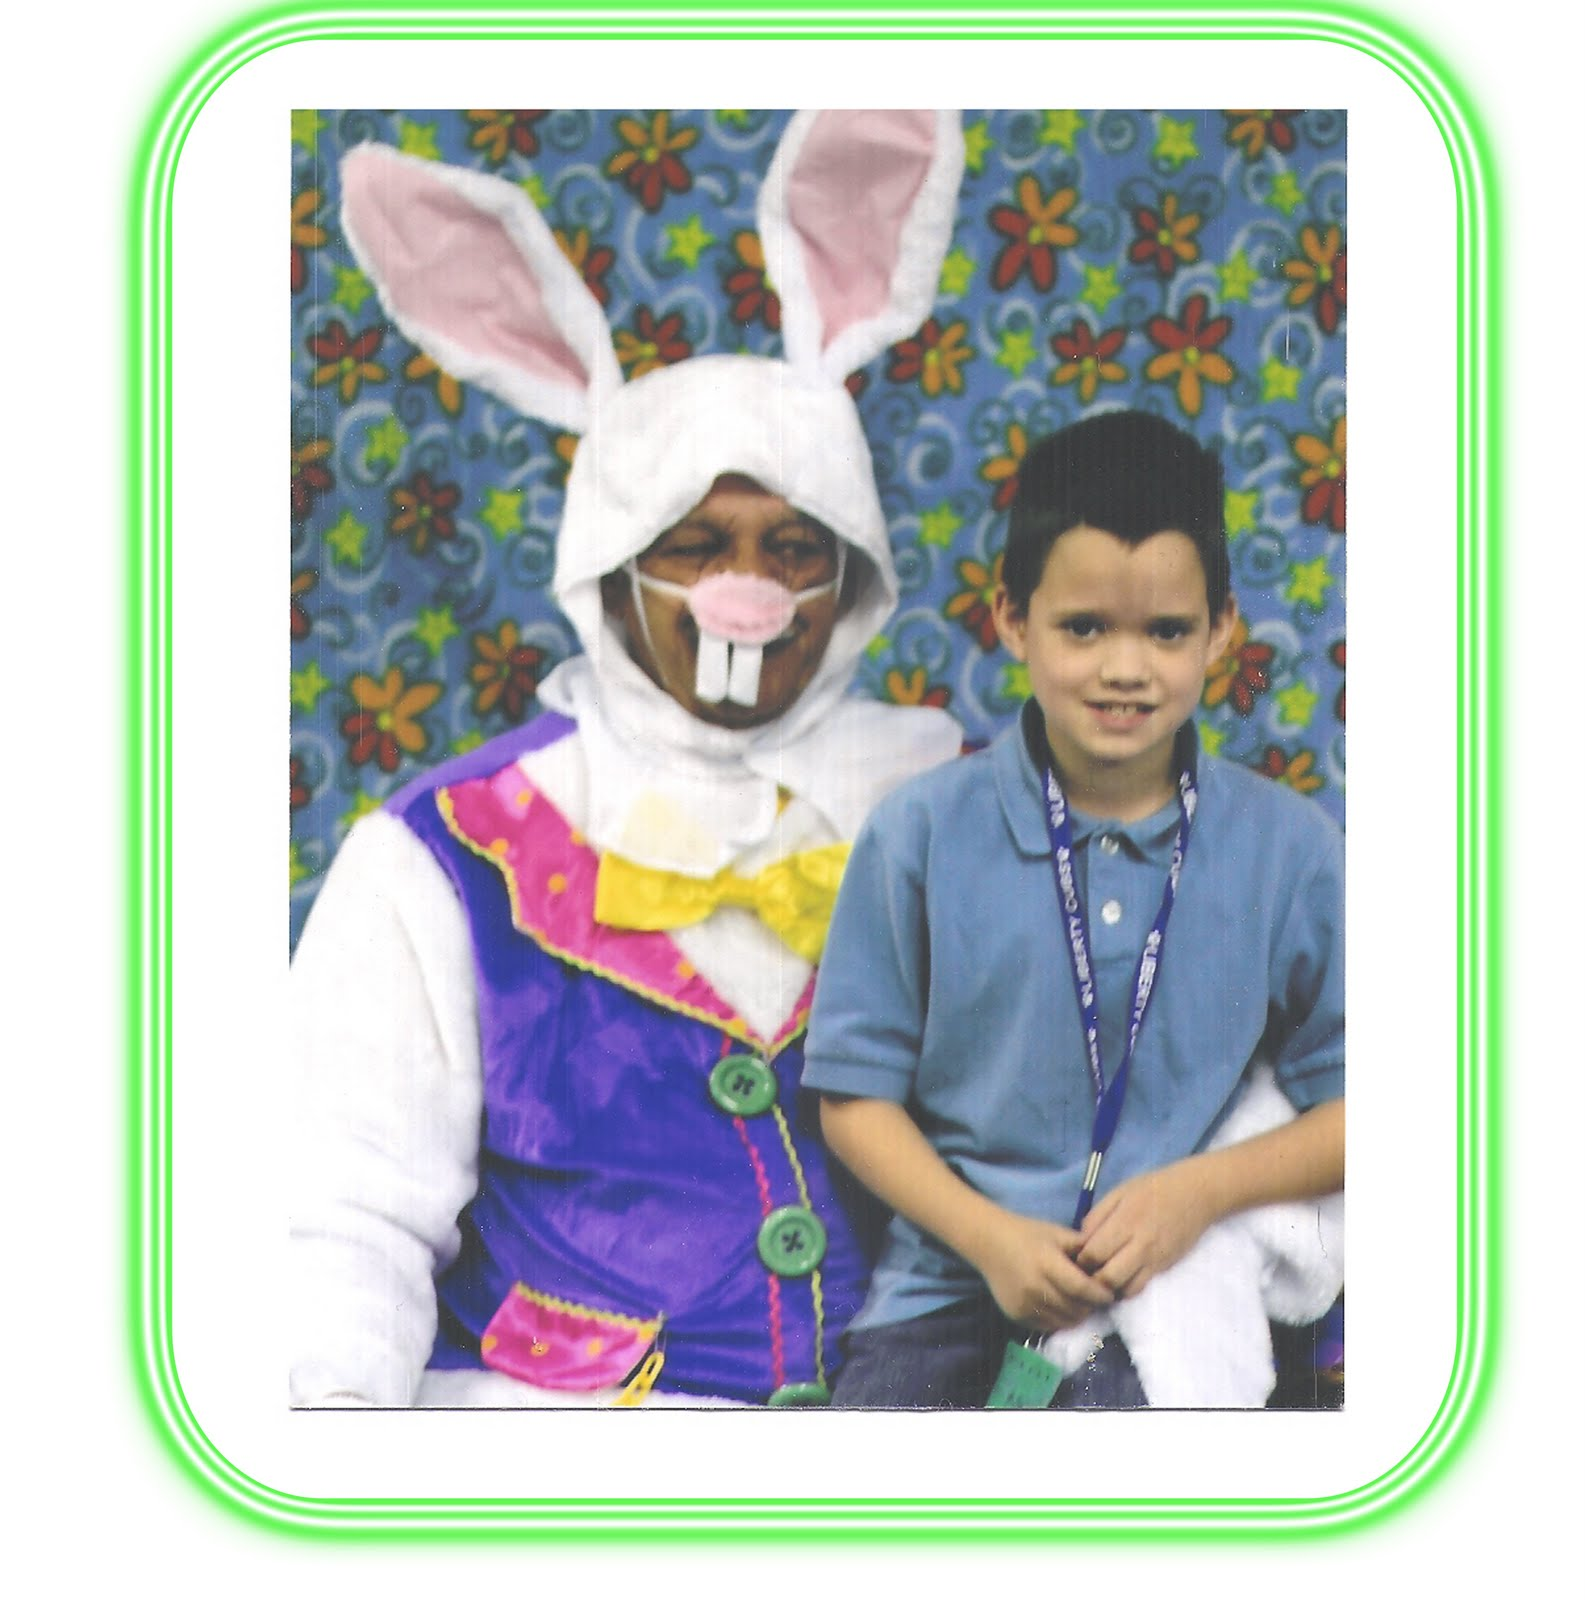 Scary Easter Bunny Photos Easter bunny